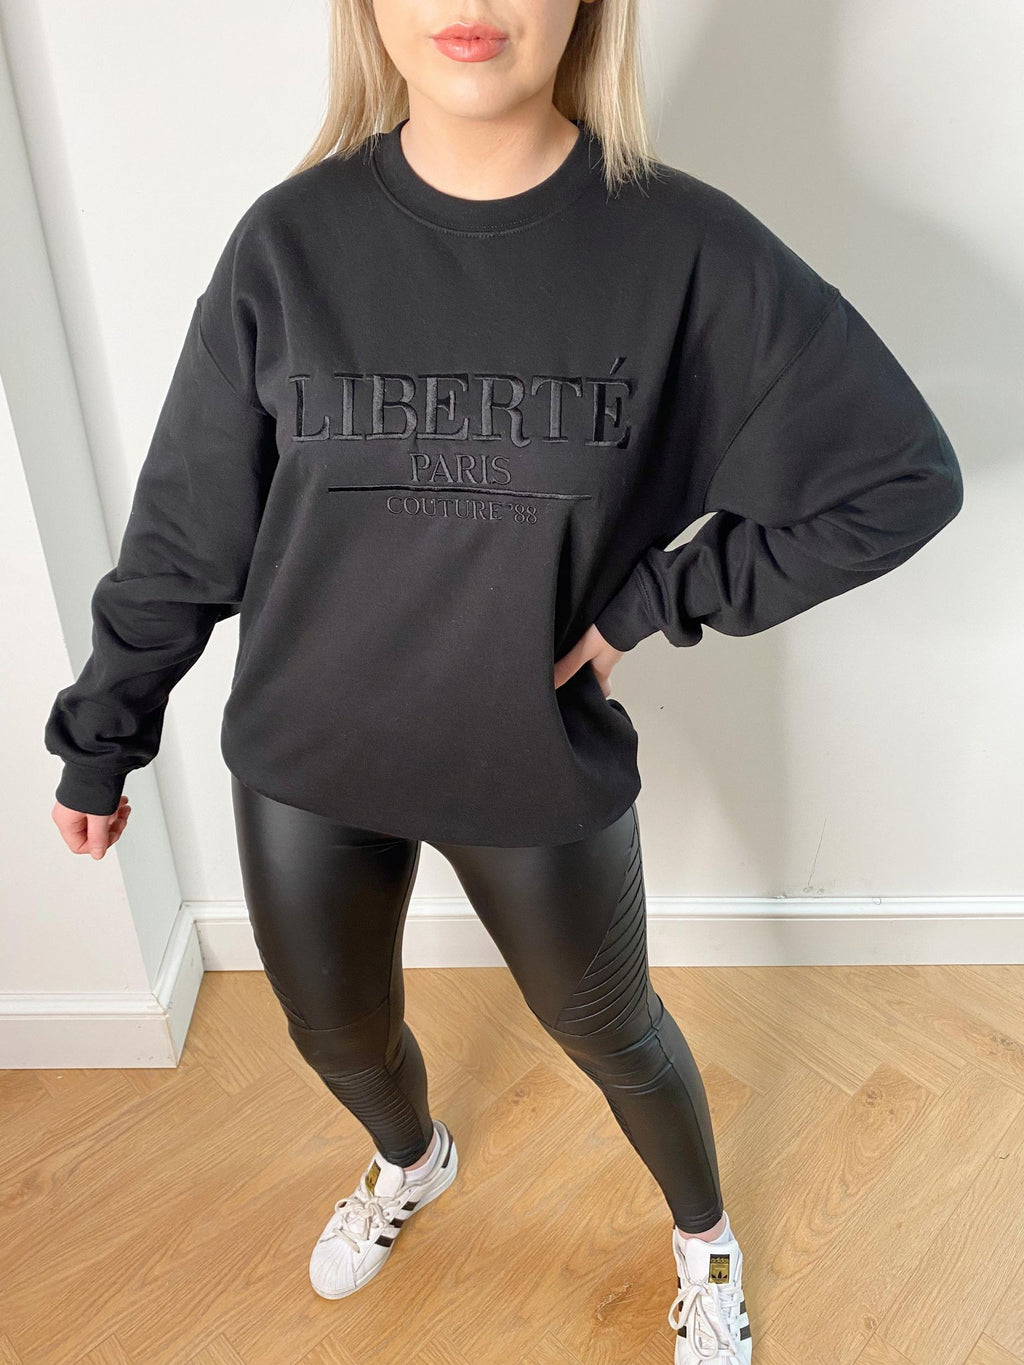 Embroidered Liberte Sweatshirt Jumper - Black